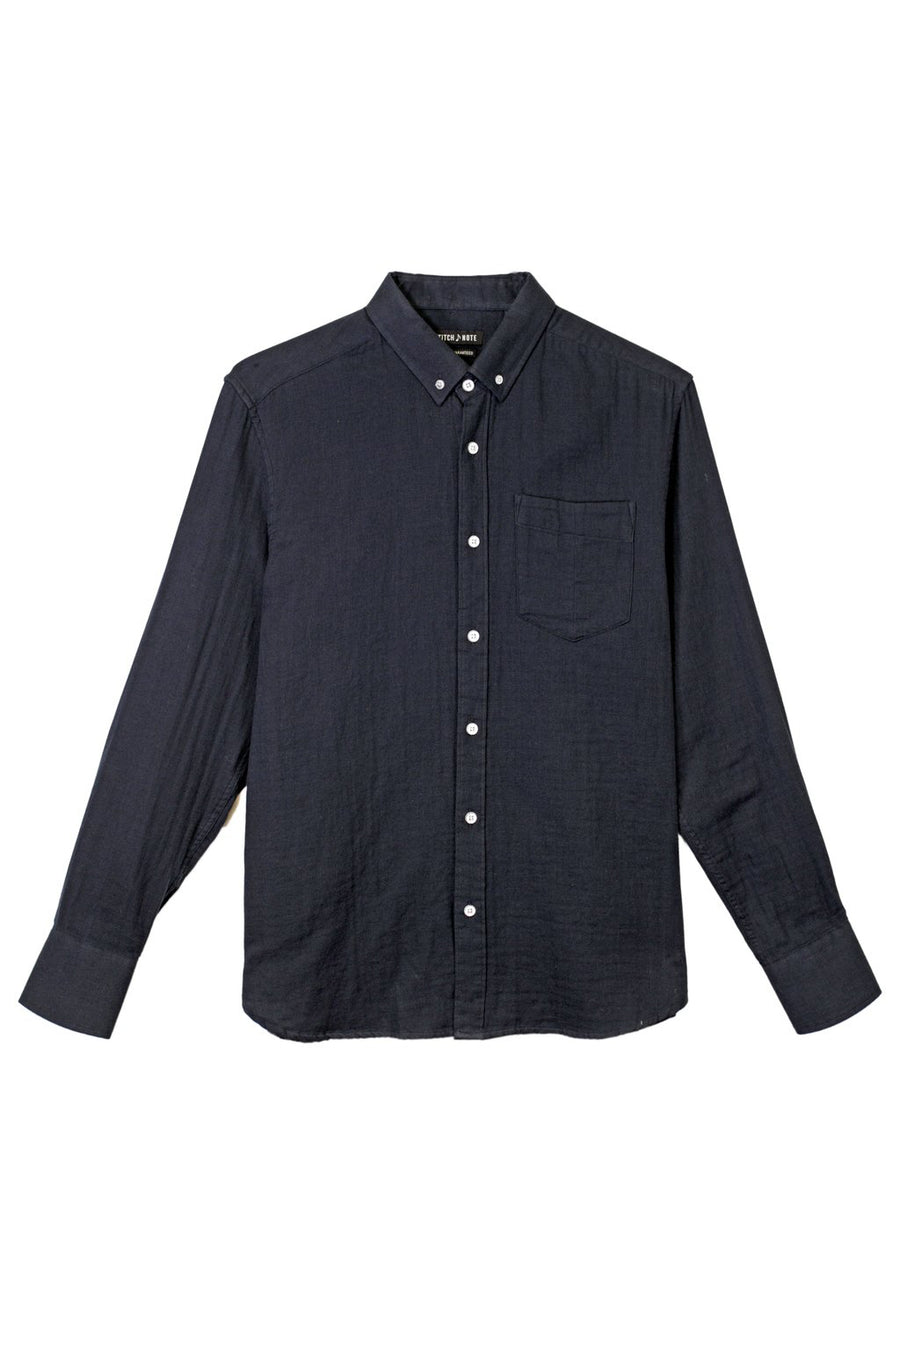 Solid Two Faced Gauze Long Sleeve Button Down - Navy - Pavilion